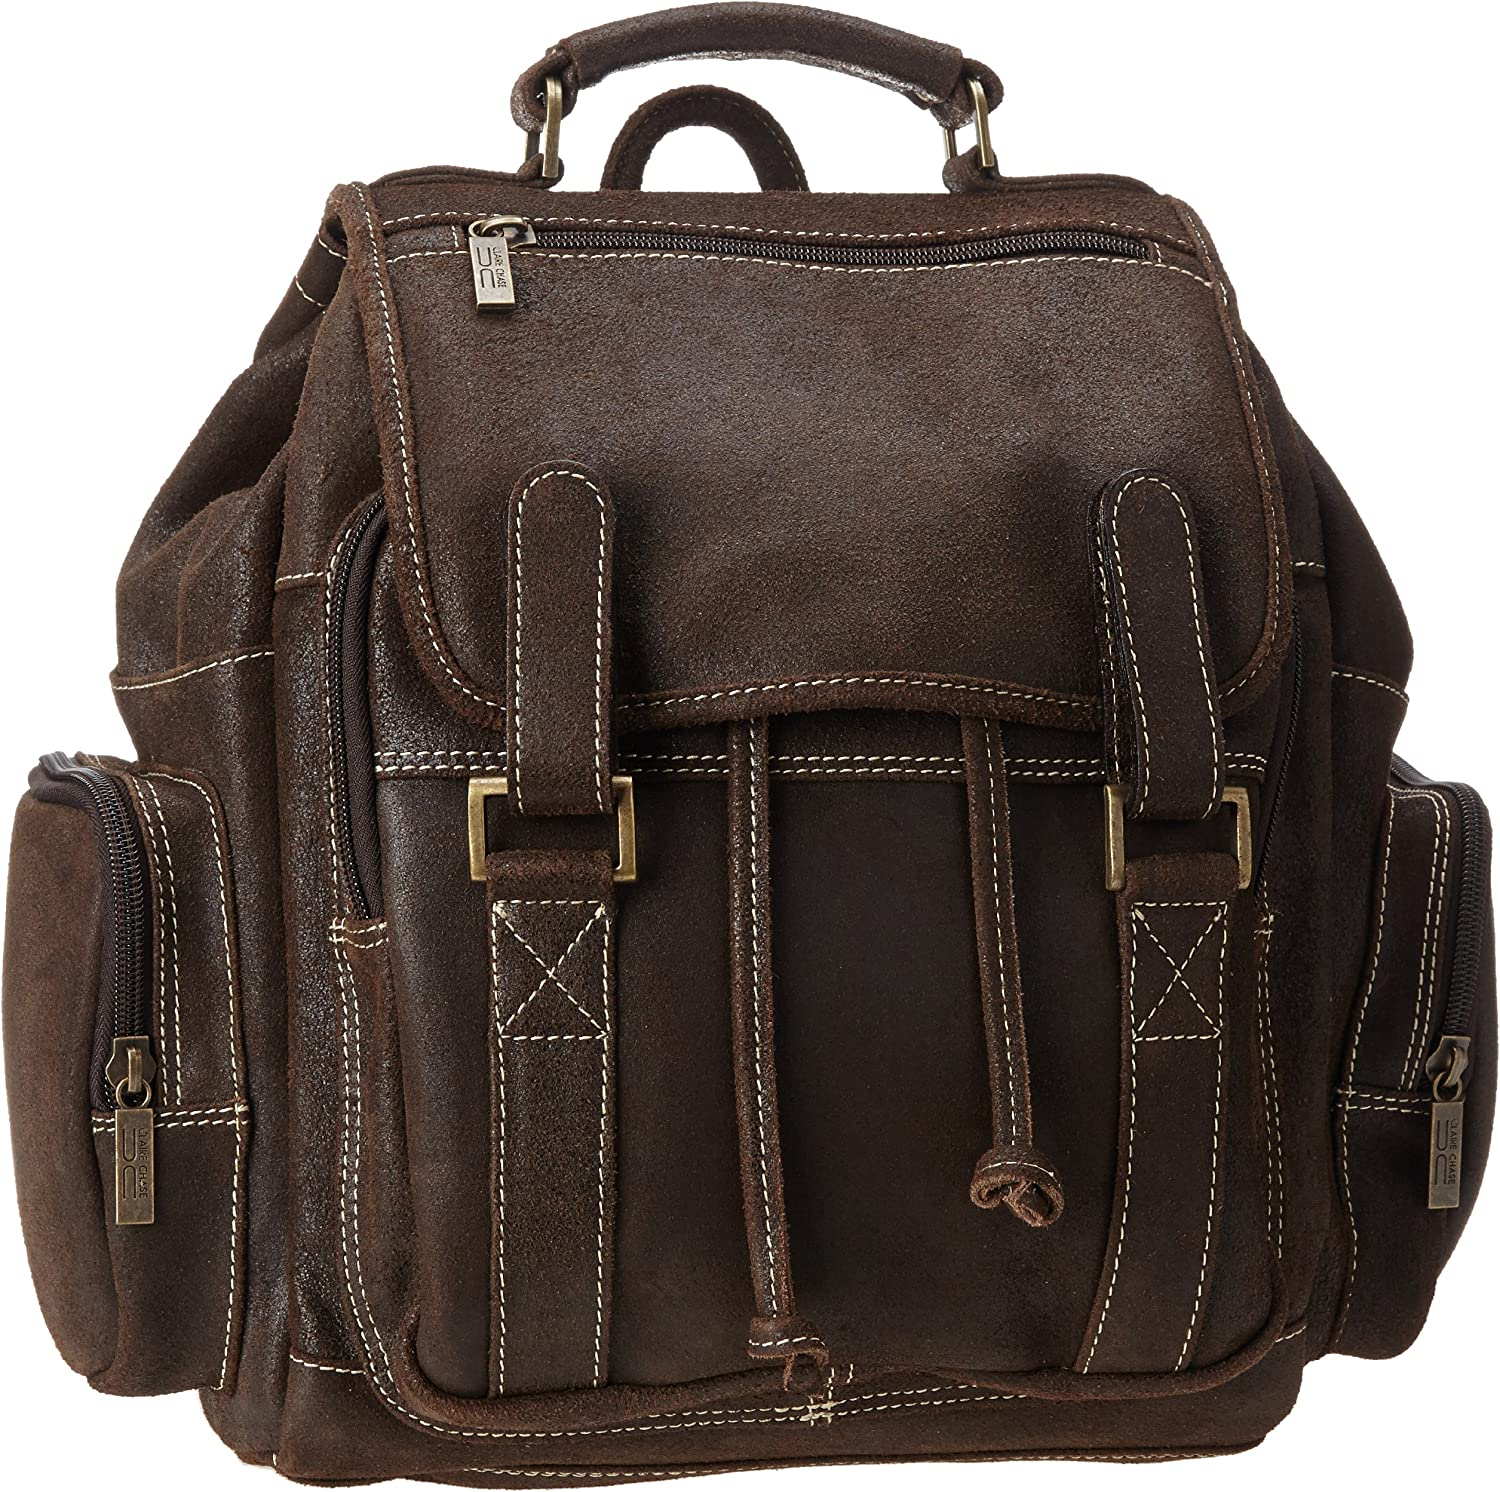 Claire Chase Laptop Leather Sierra Backpack Computer Bag in Saddle